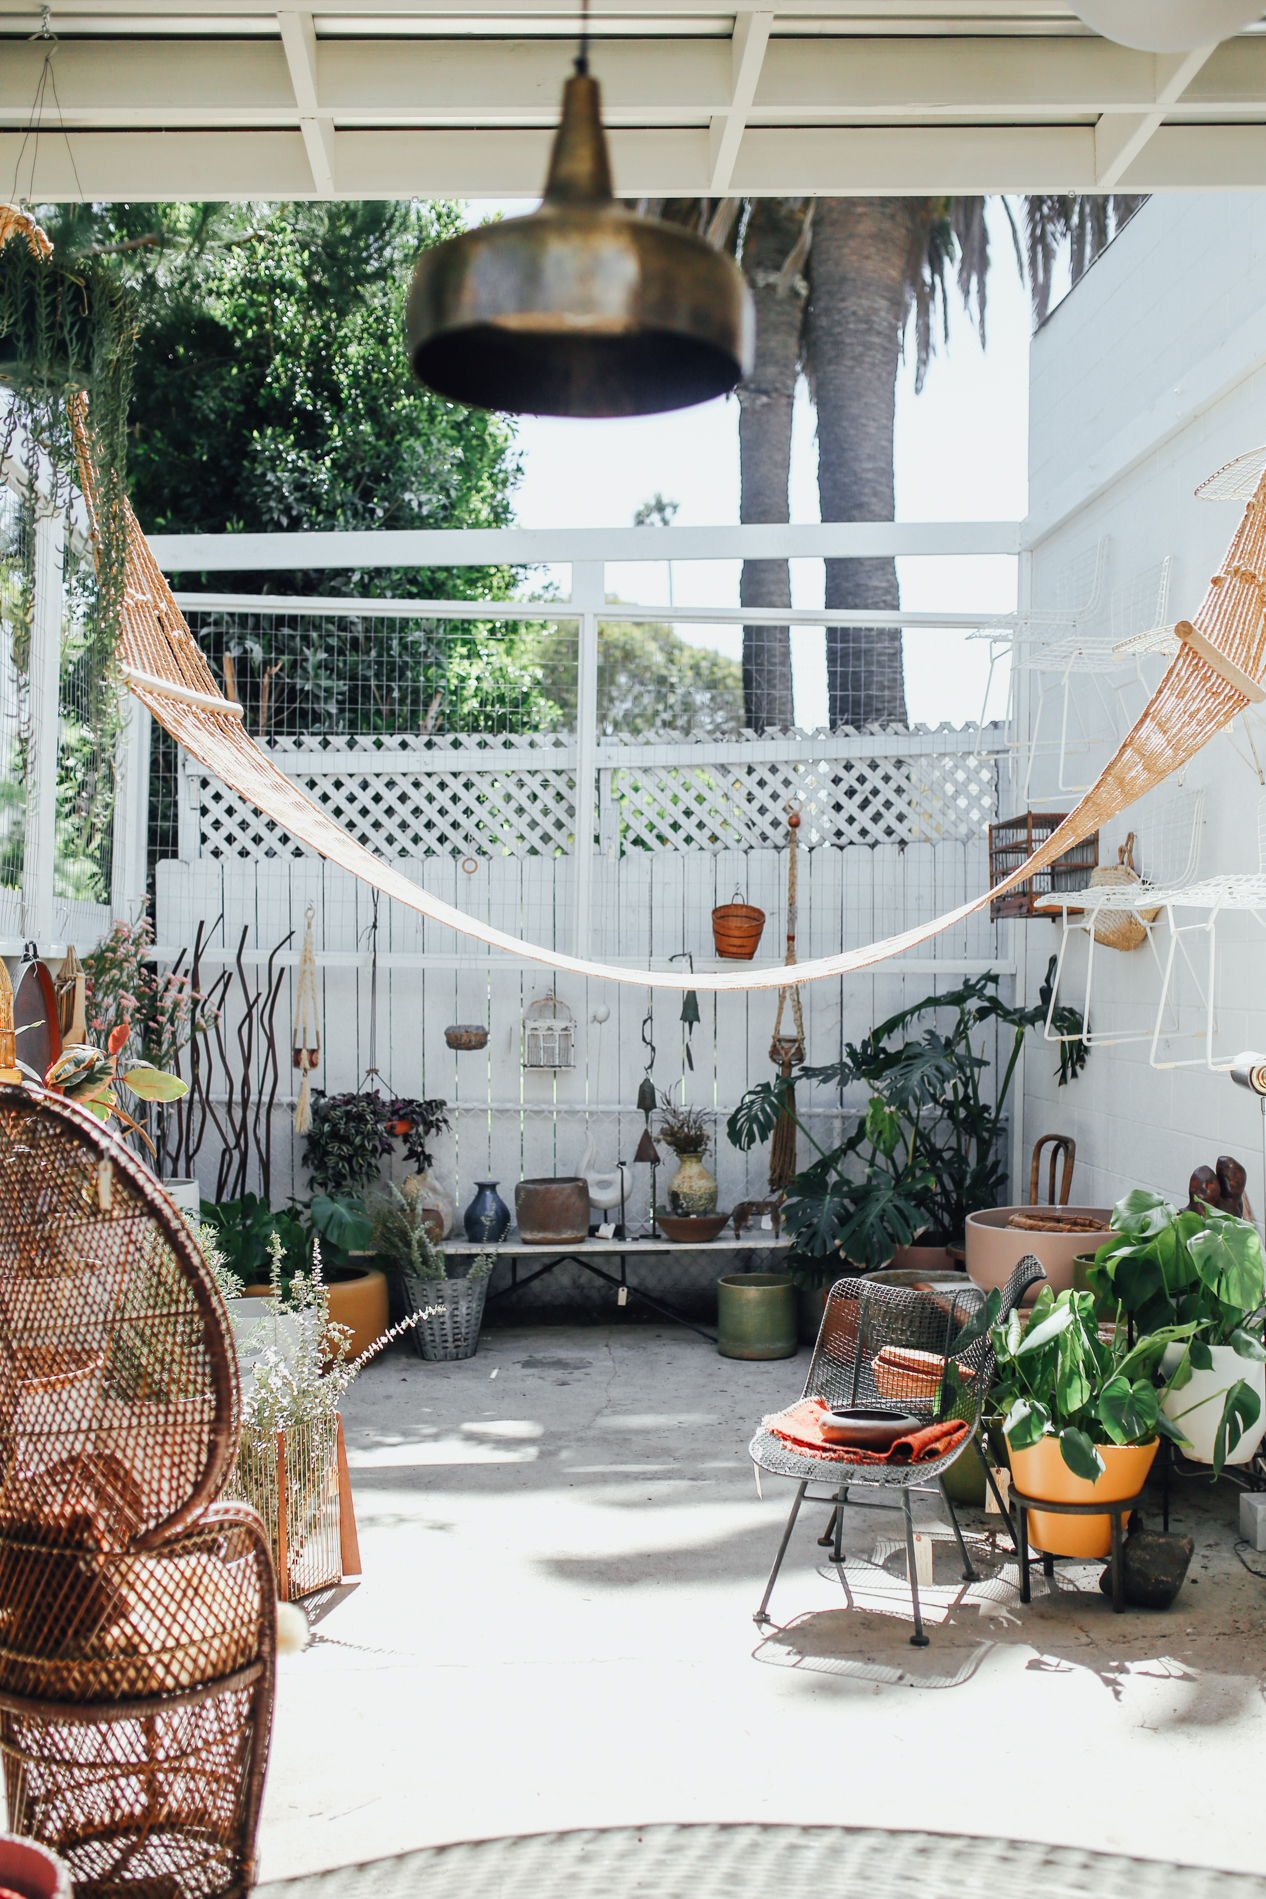 The La City Guide To Abbot Kinney